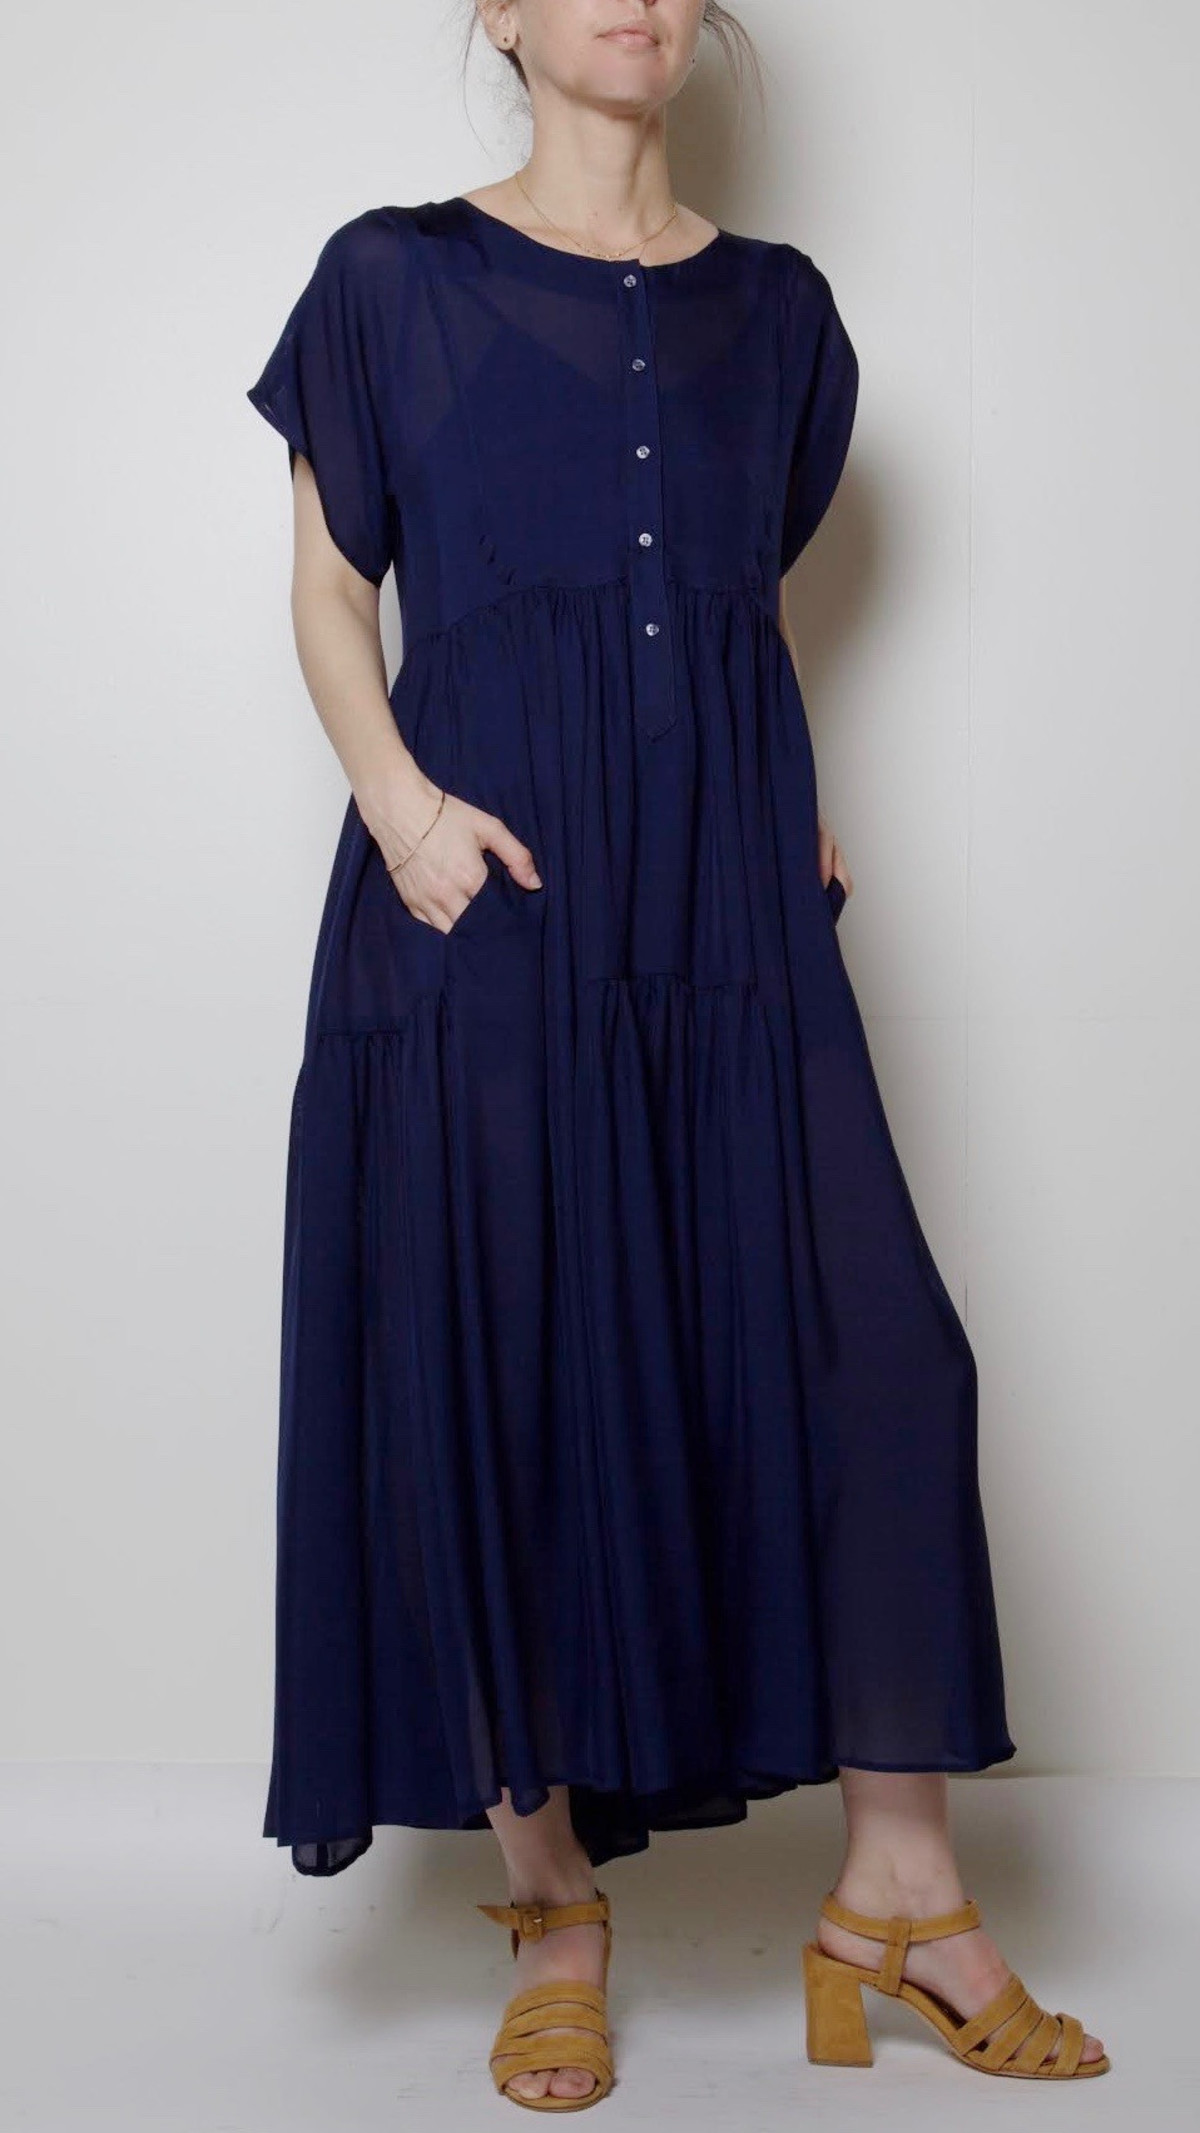 Florenza Dress In NavyGarmentory Maryam Zadeh Nassir 4Sj35cRAqL